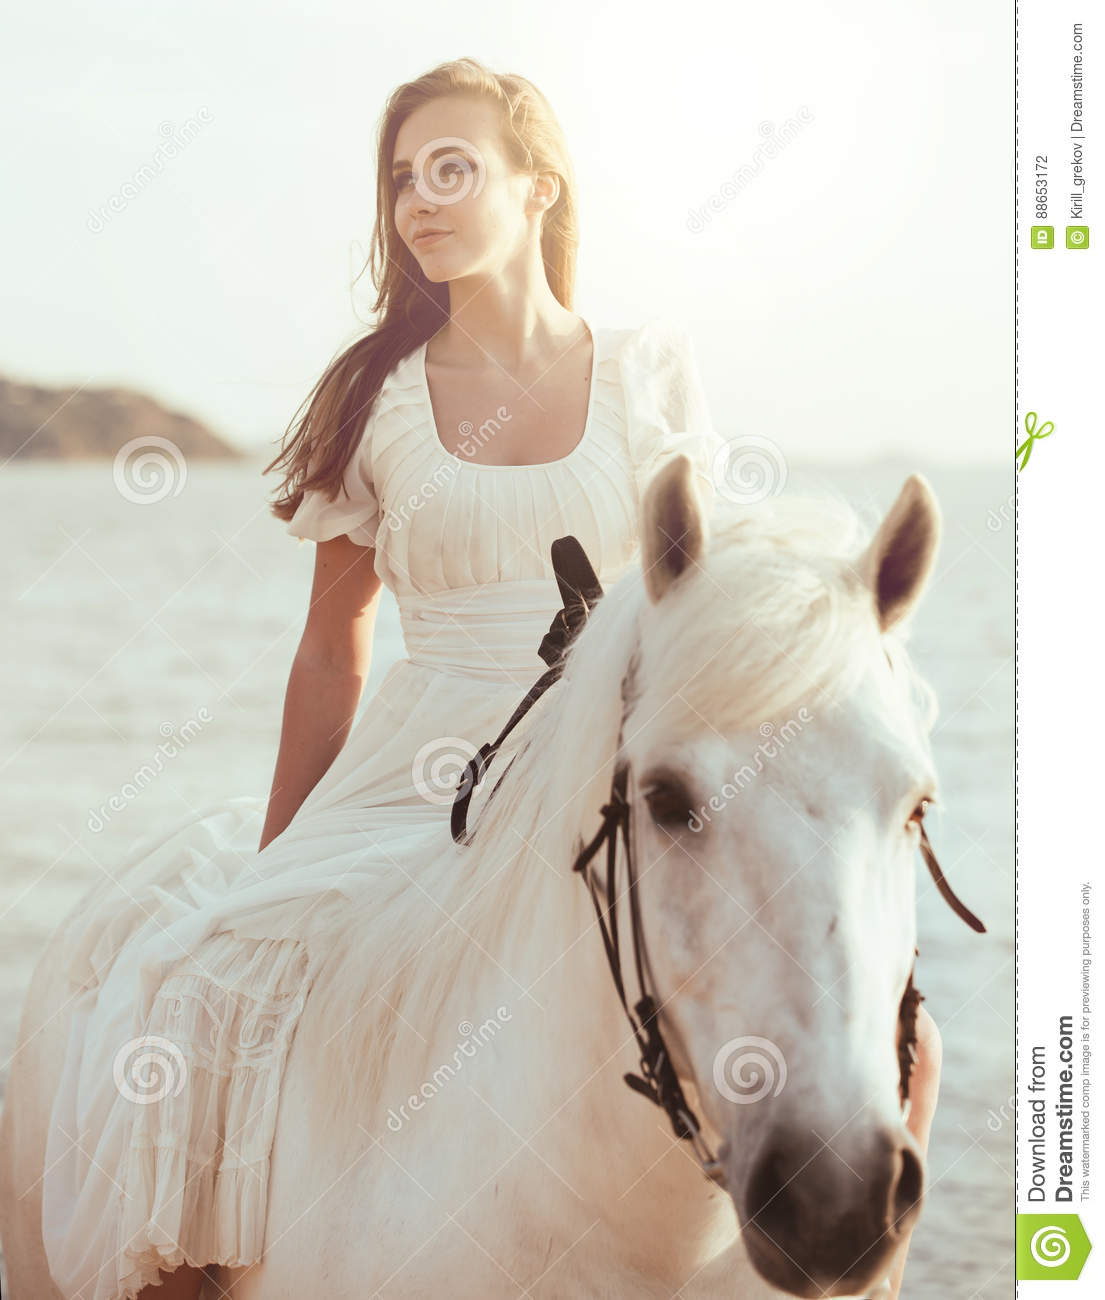 Girl In White Dress With Horse On The Beach Stock Photo - Image of ...